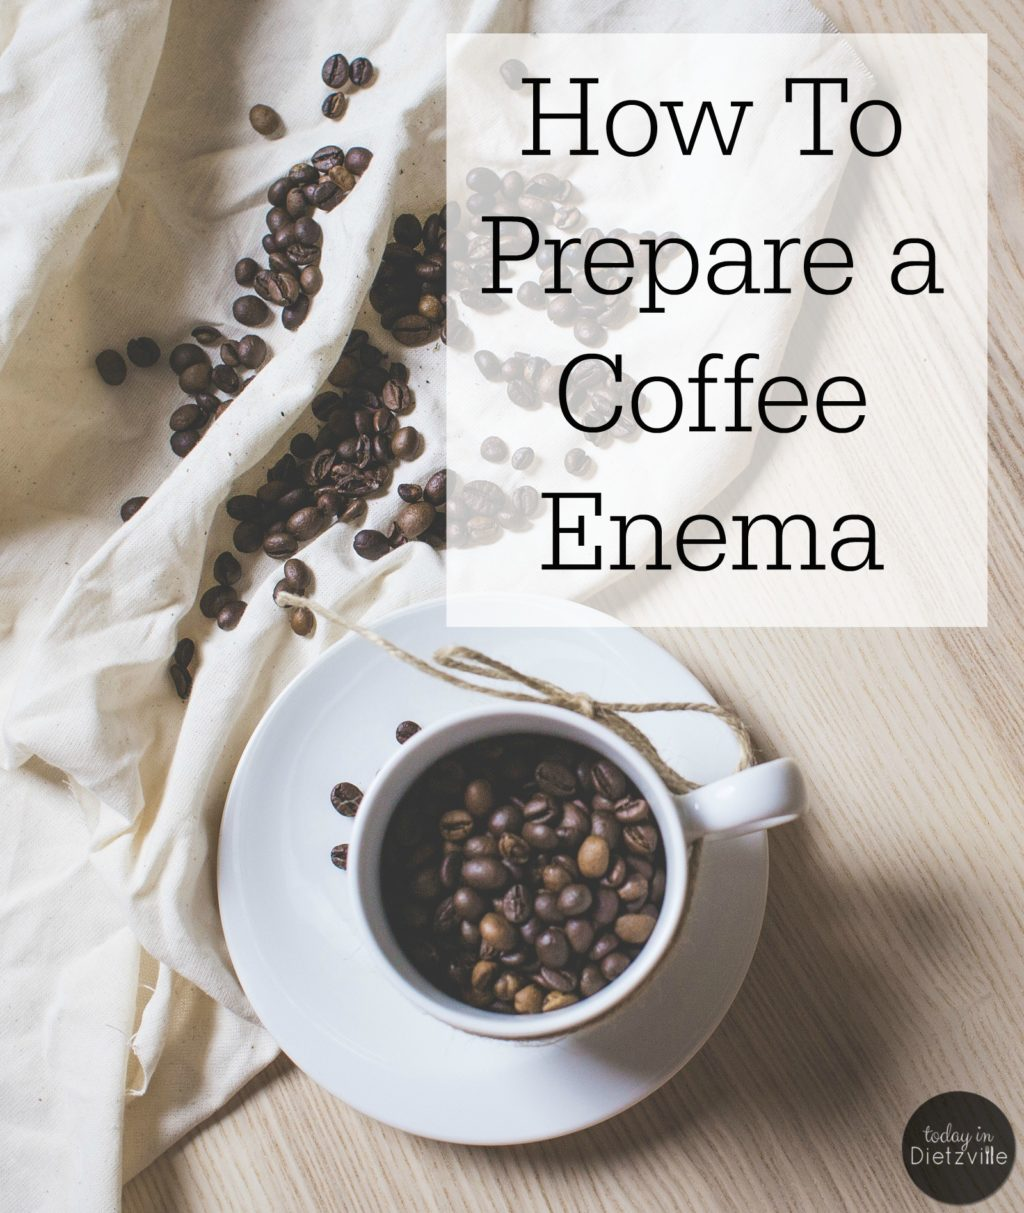 Foods You Can Prepare With A Coffee Pot